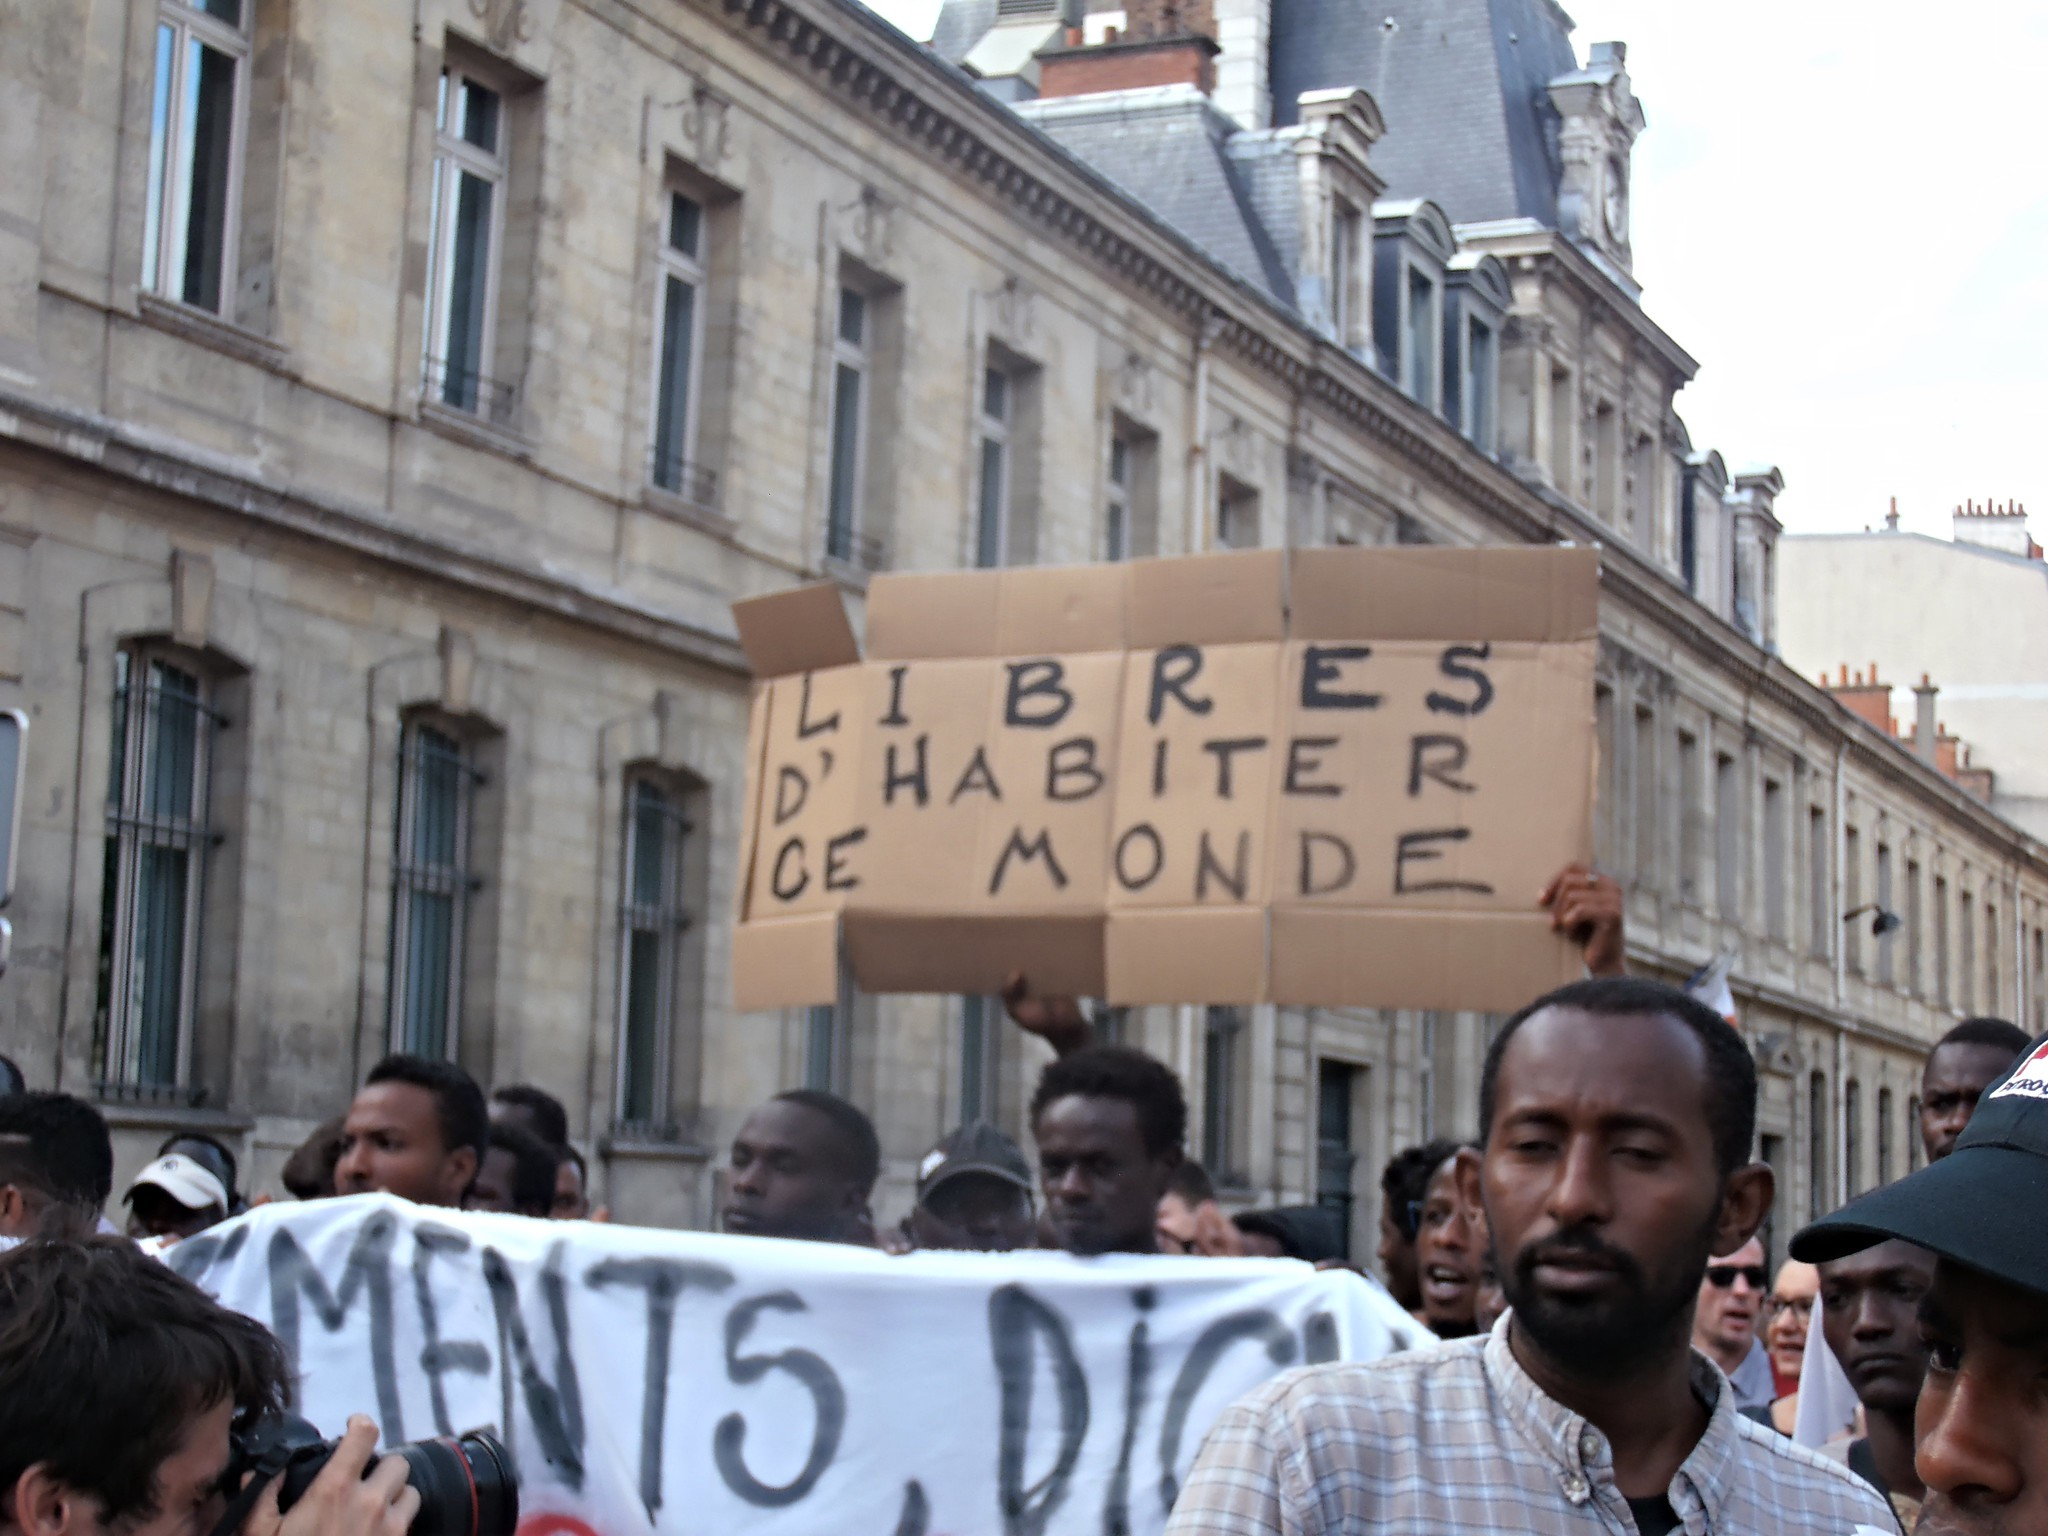 Migrants' protest. Paris La Chapelle